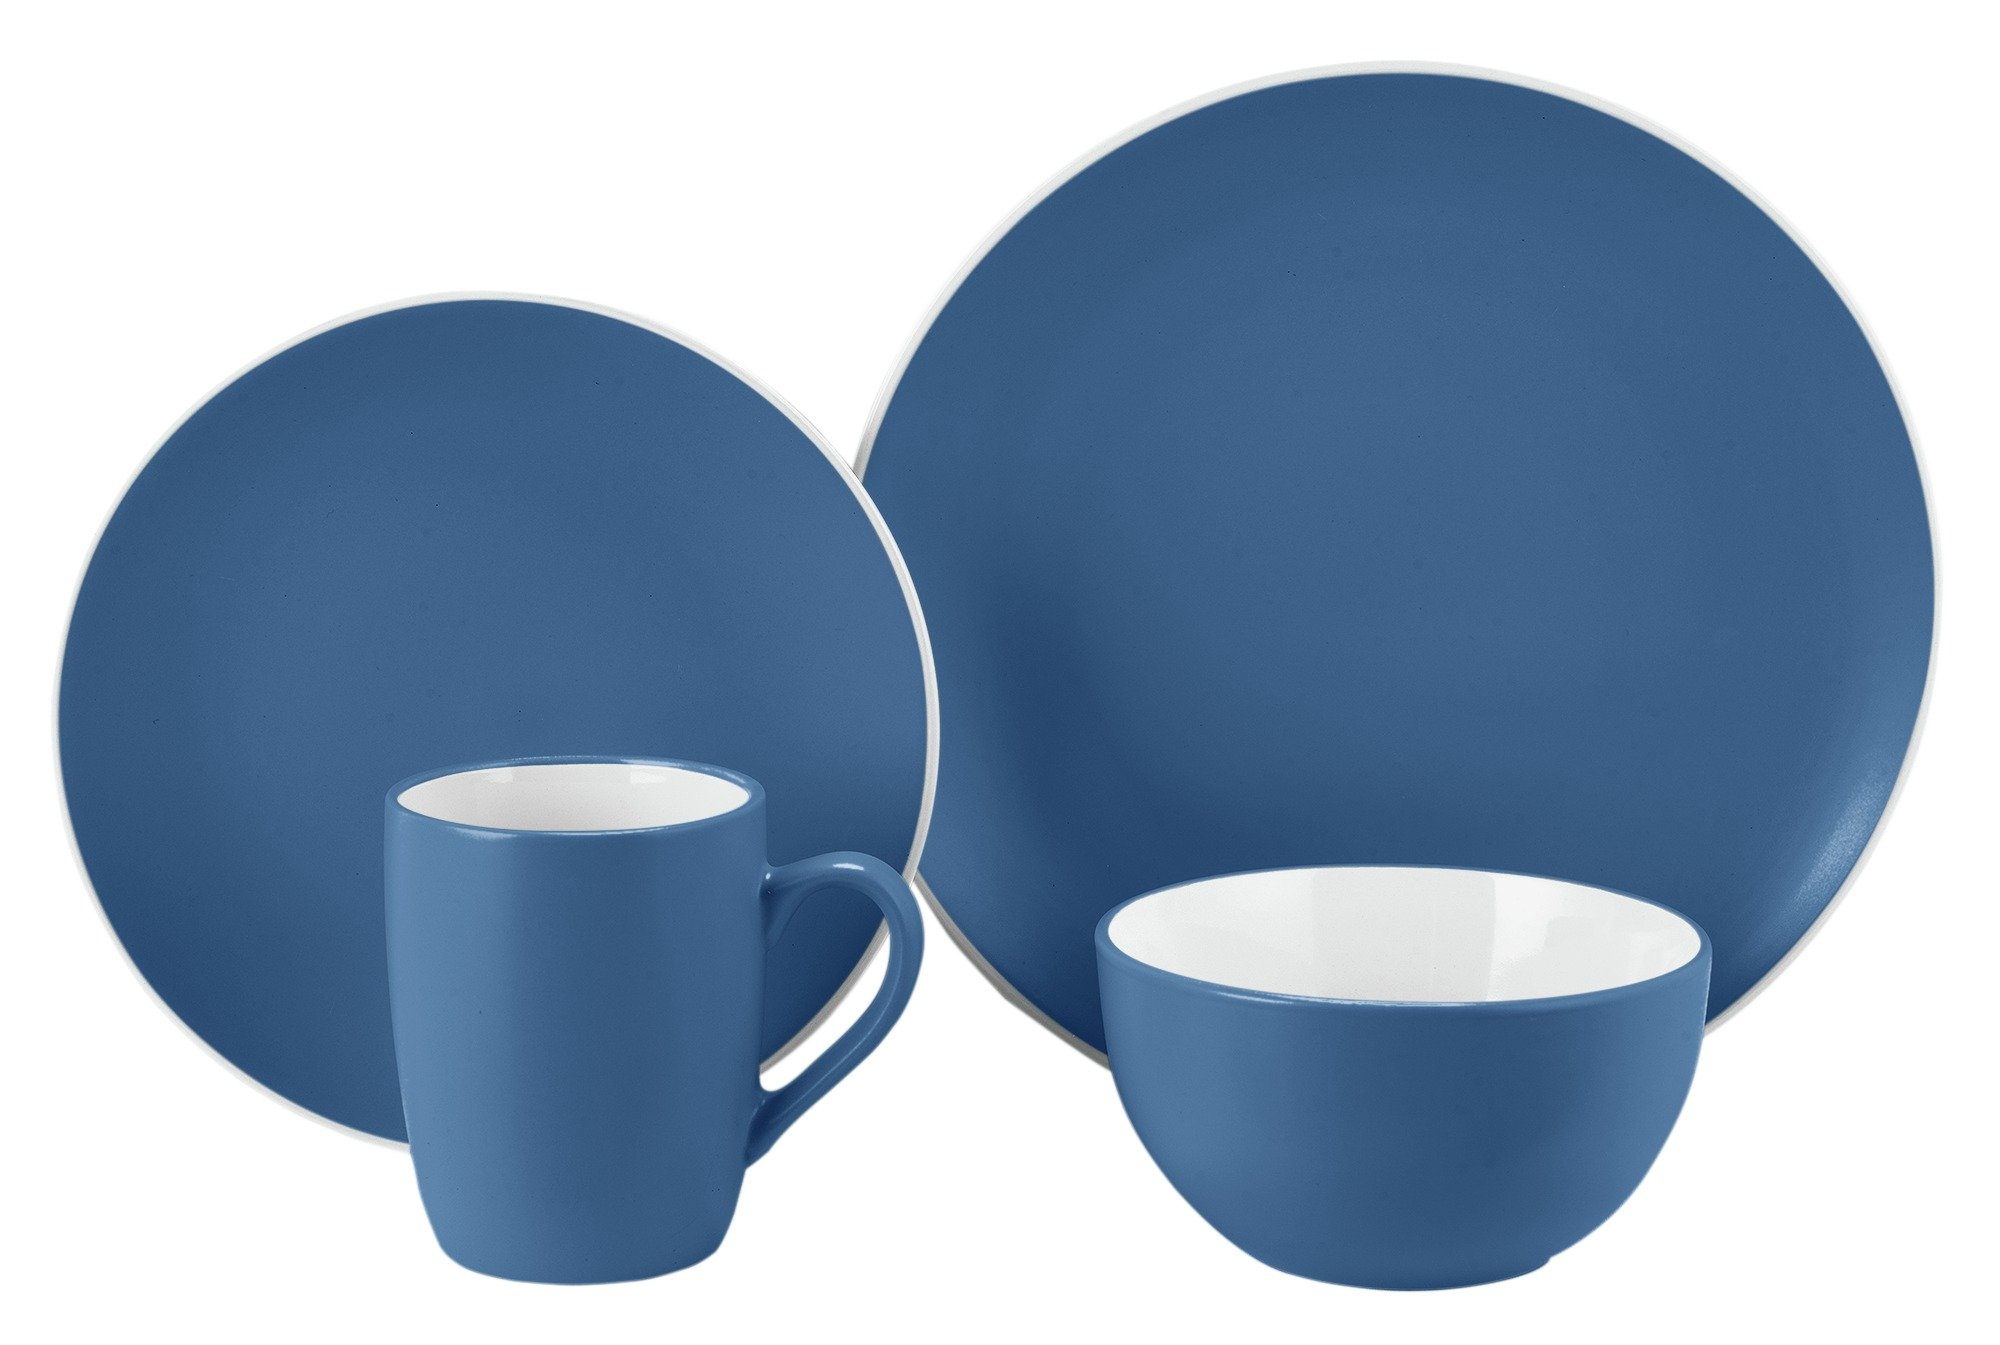 Image of ColourMatch 12 Piece Stoneware Dinner Set - Ink Blue